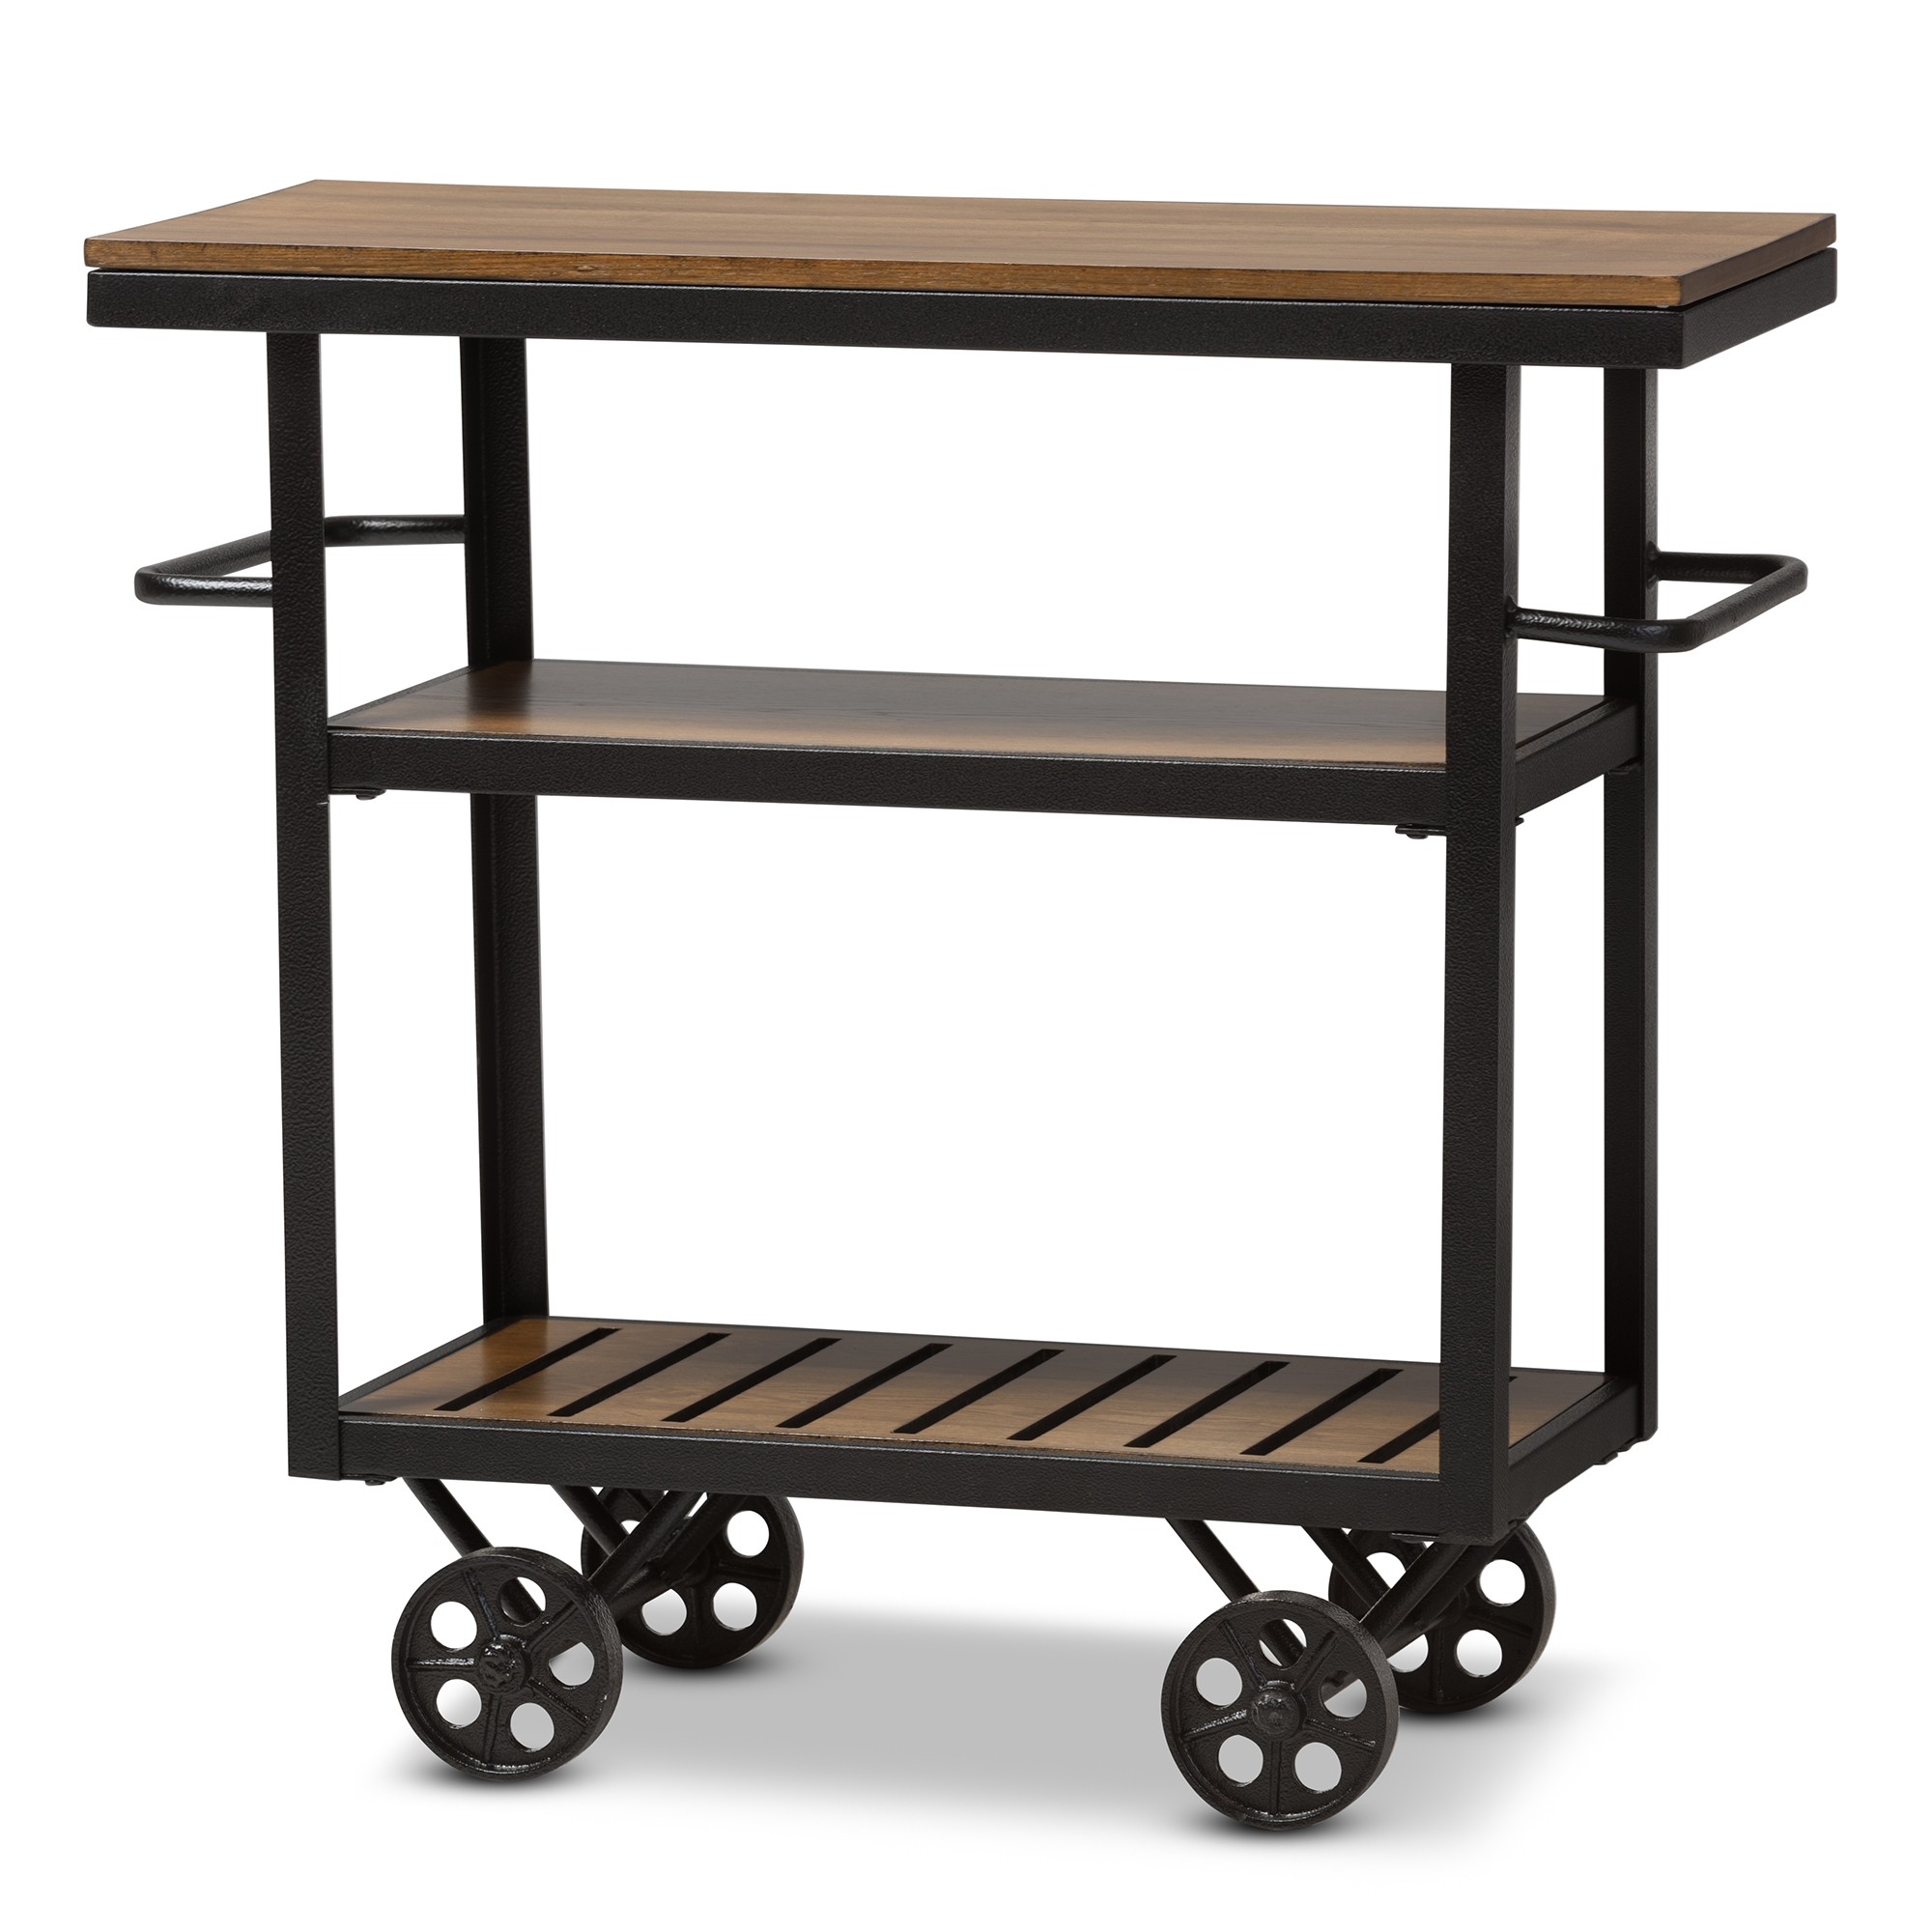 Charmant Baxton Studio Kennedy Rustic Industrial Style Antique Black Textured  Finished Metal Distressed Wood Mobile Serving Cart